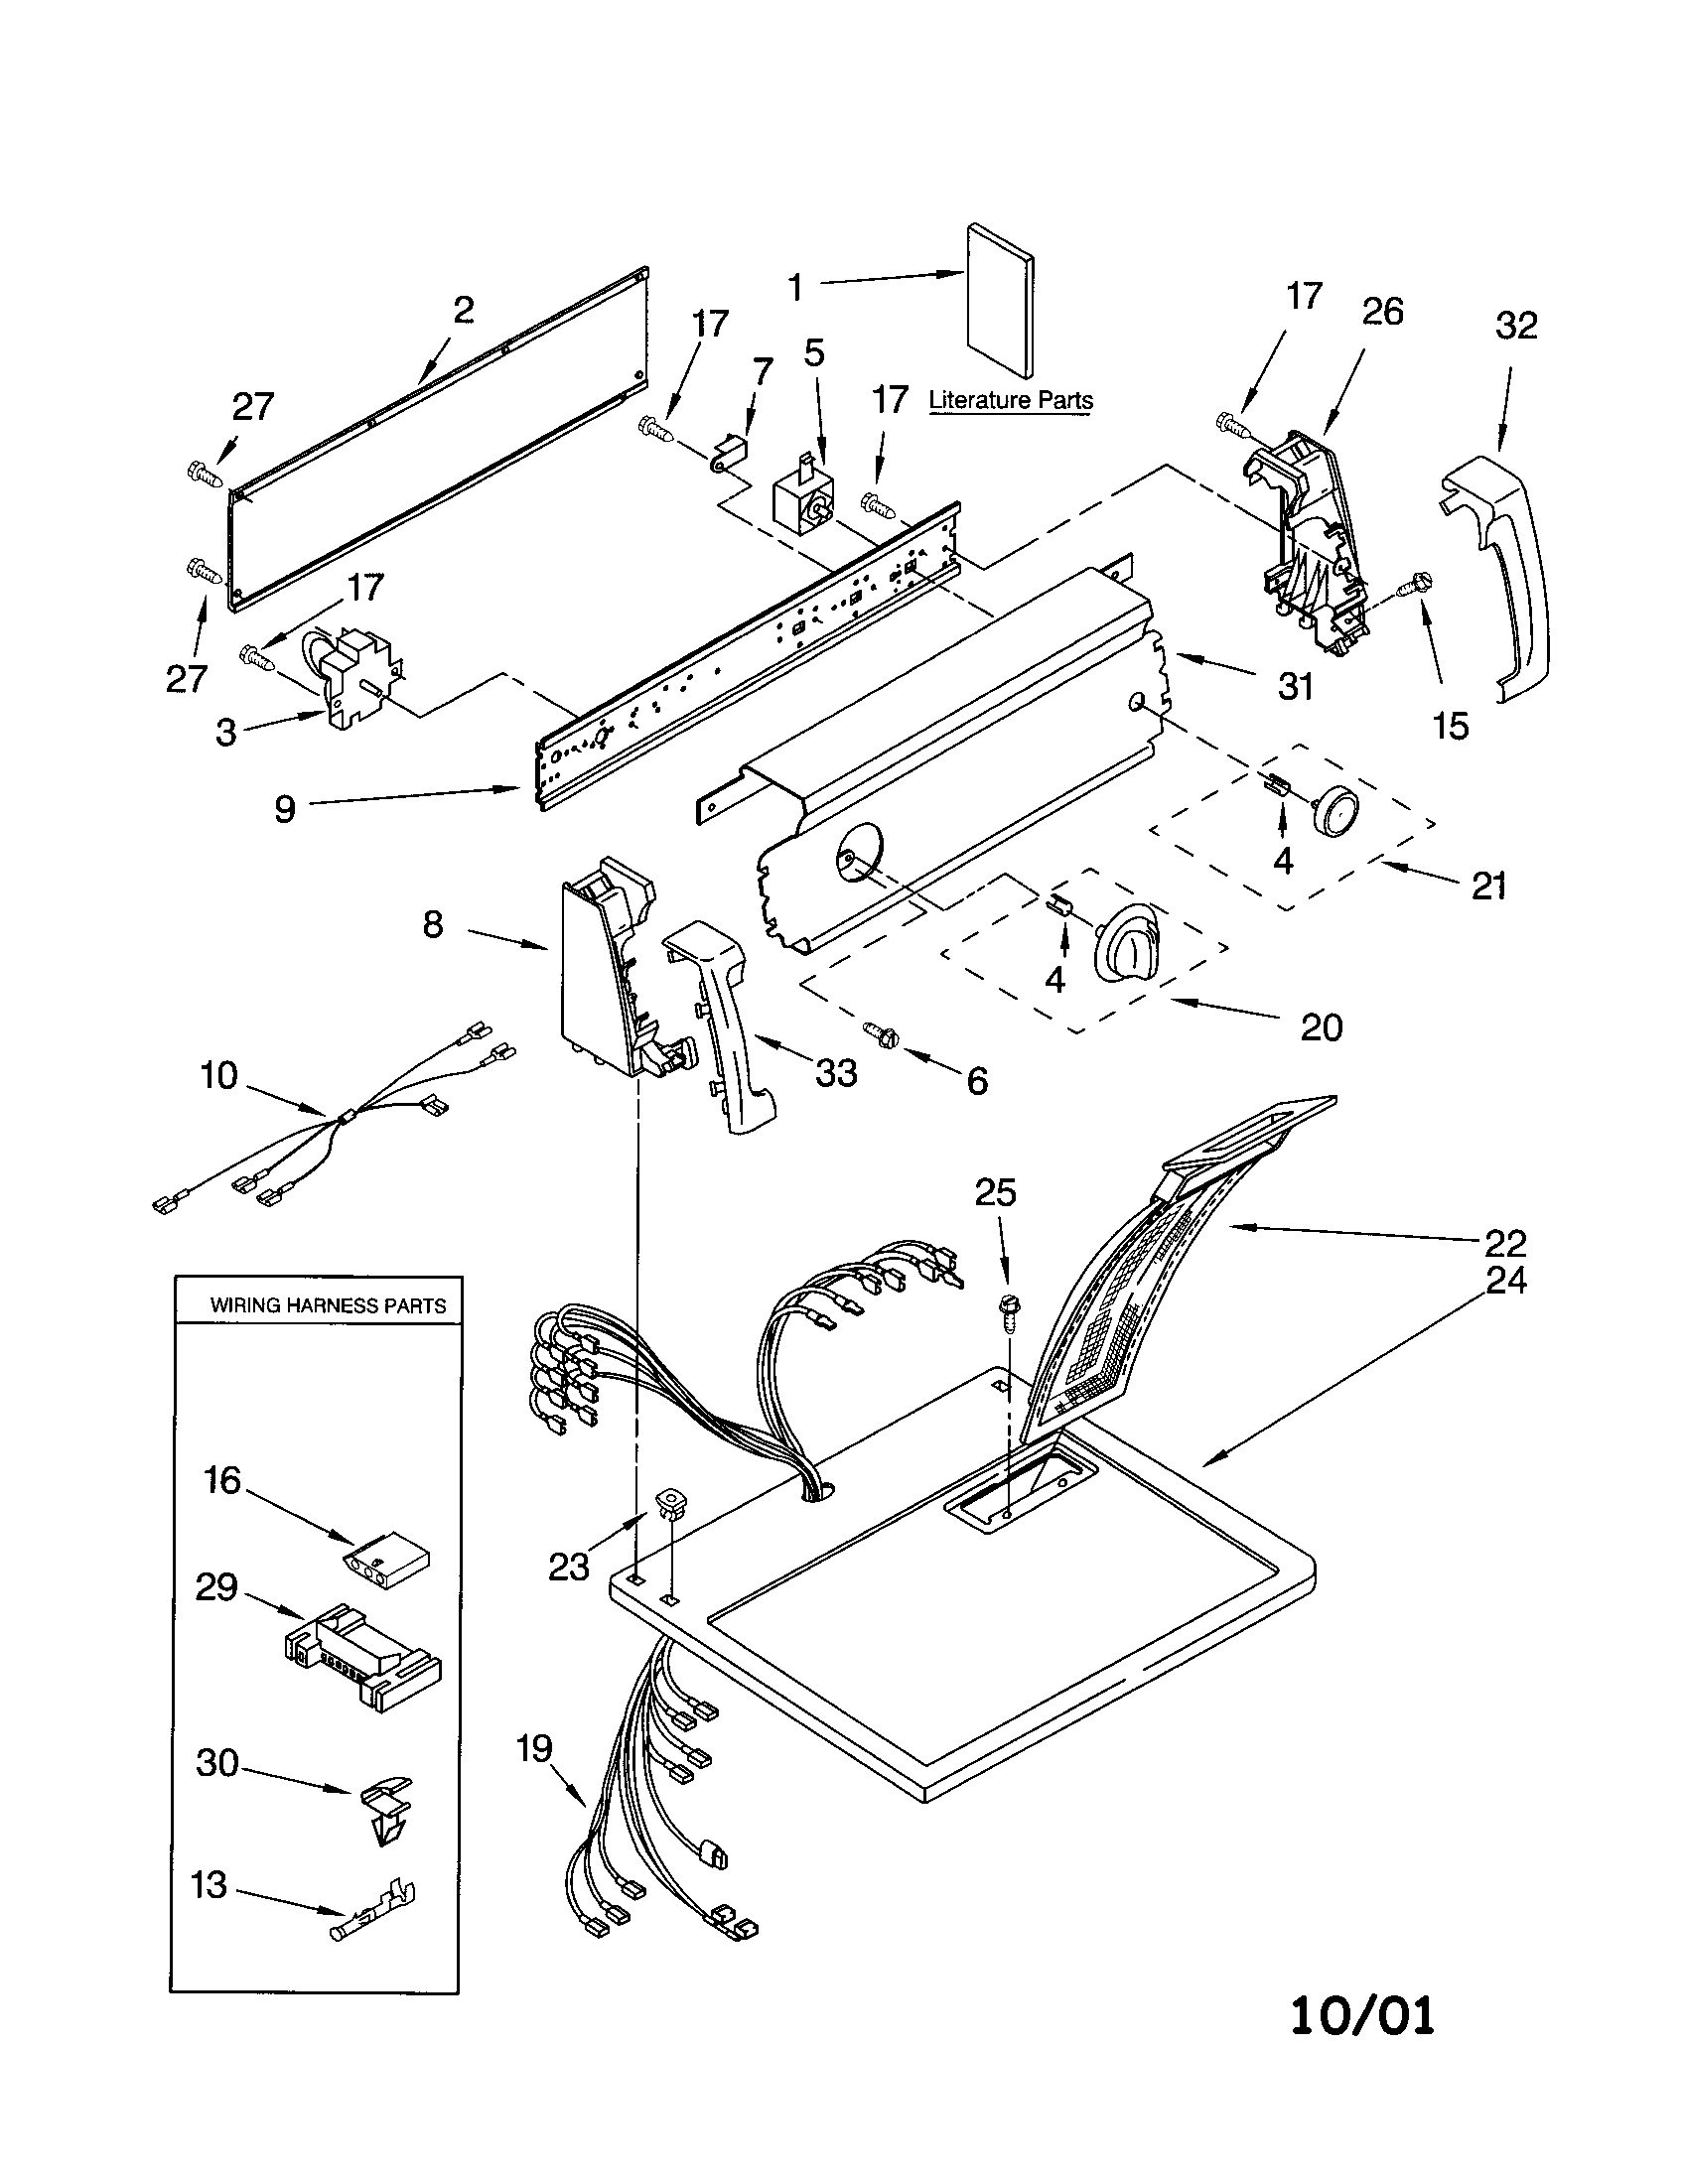 hight resolution of 11062622101 electric dryer top and console parts diagram